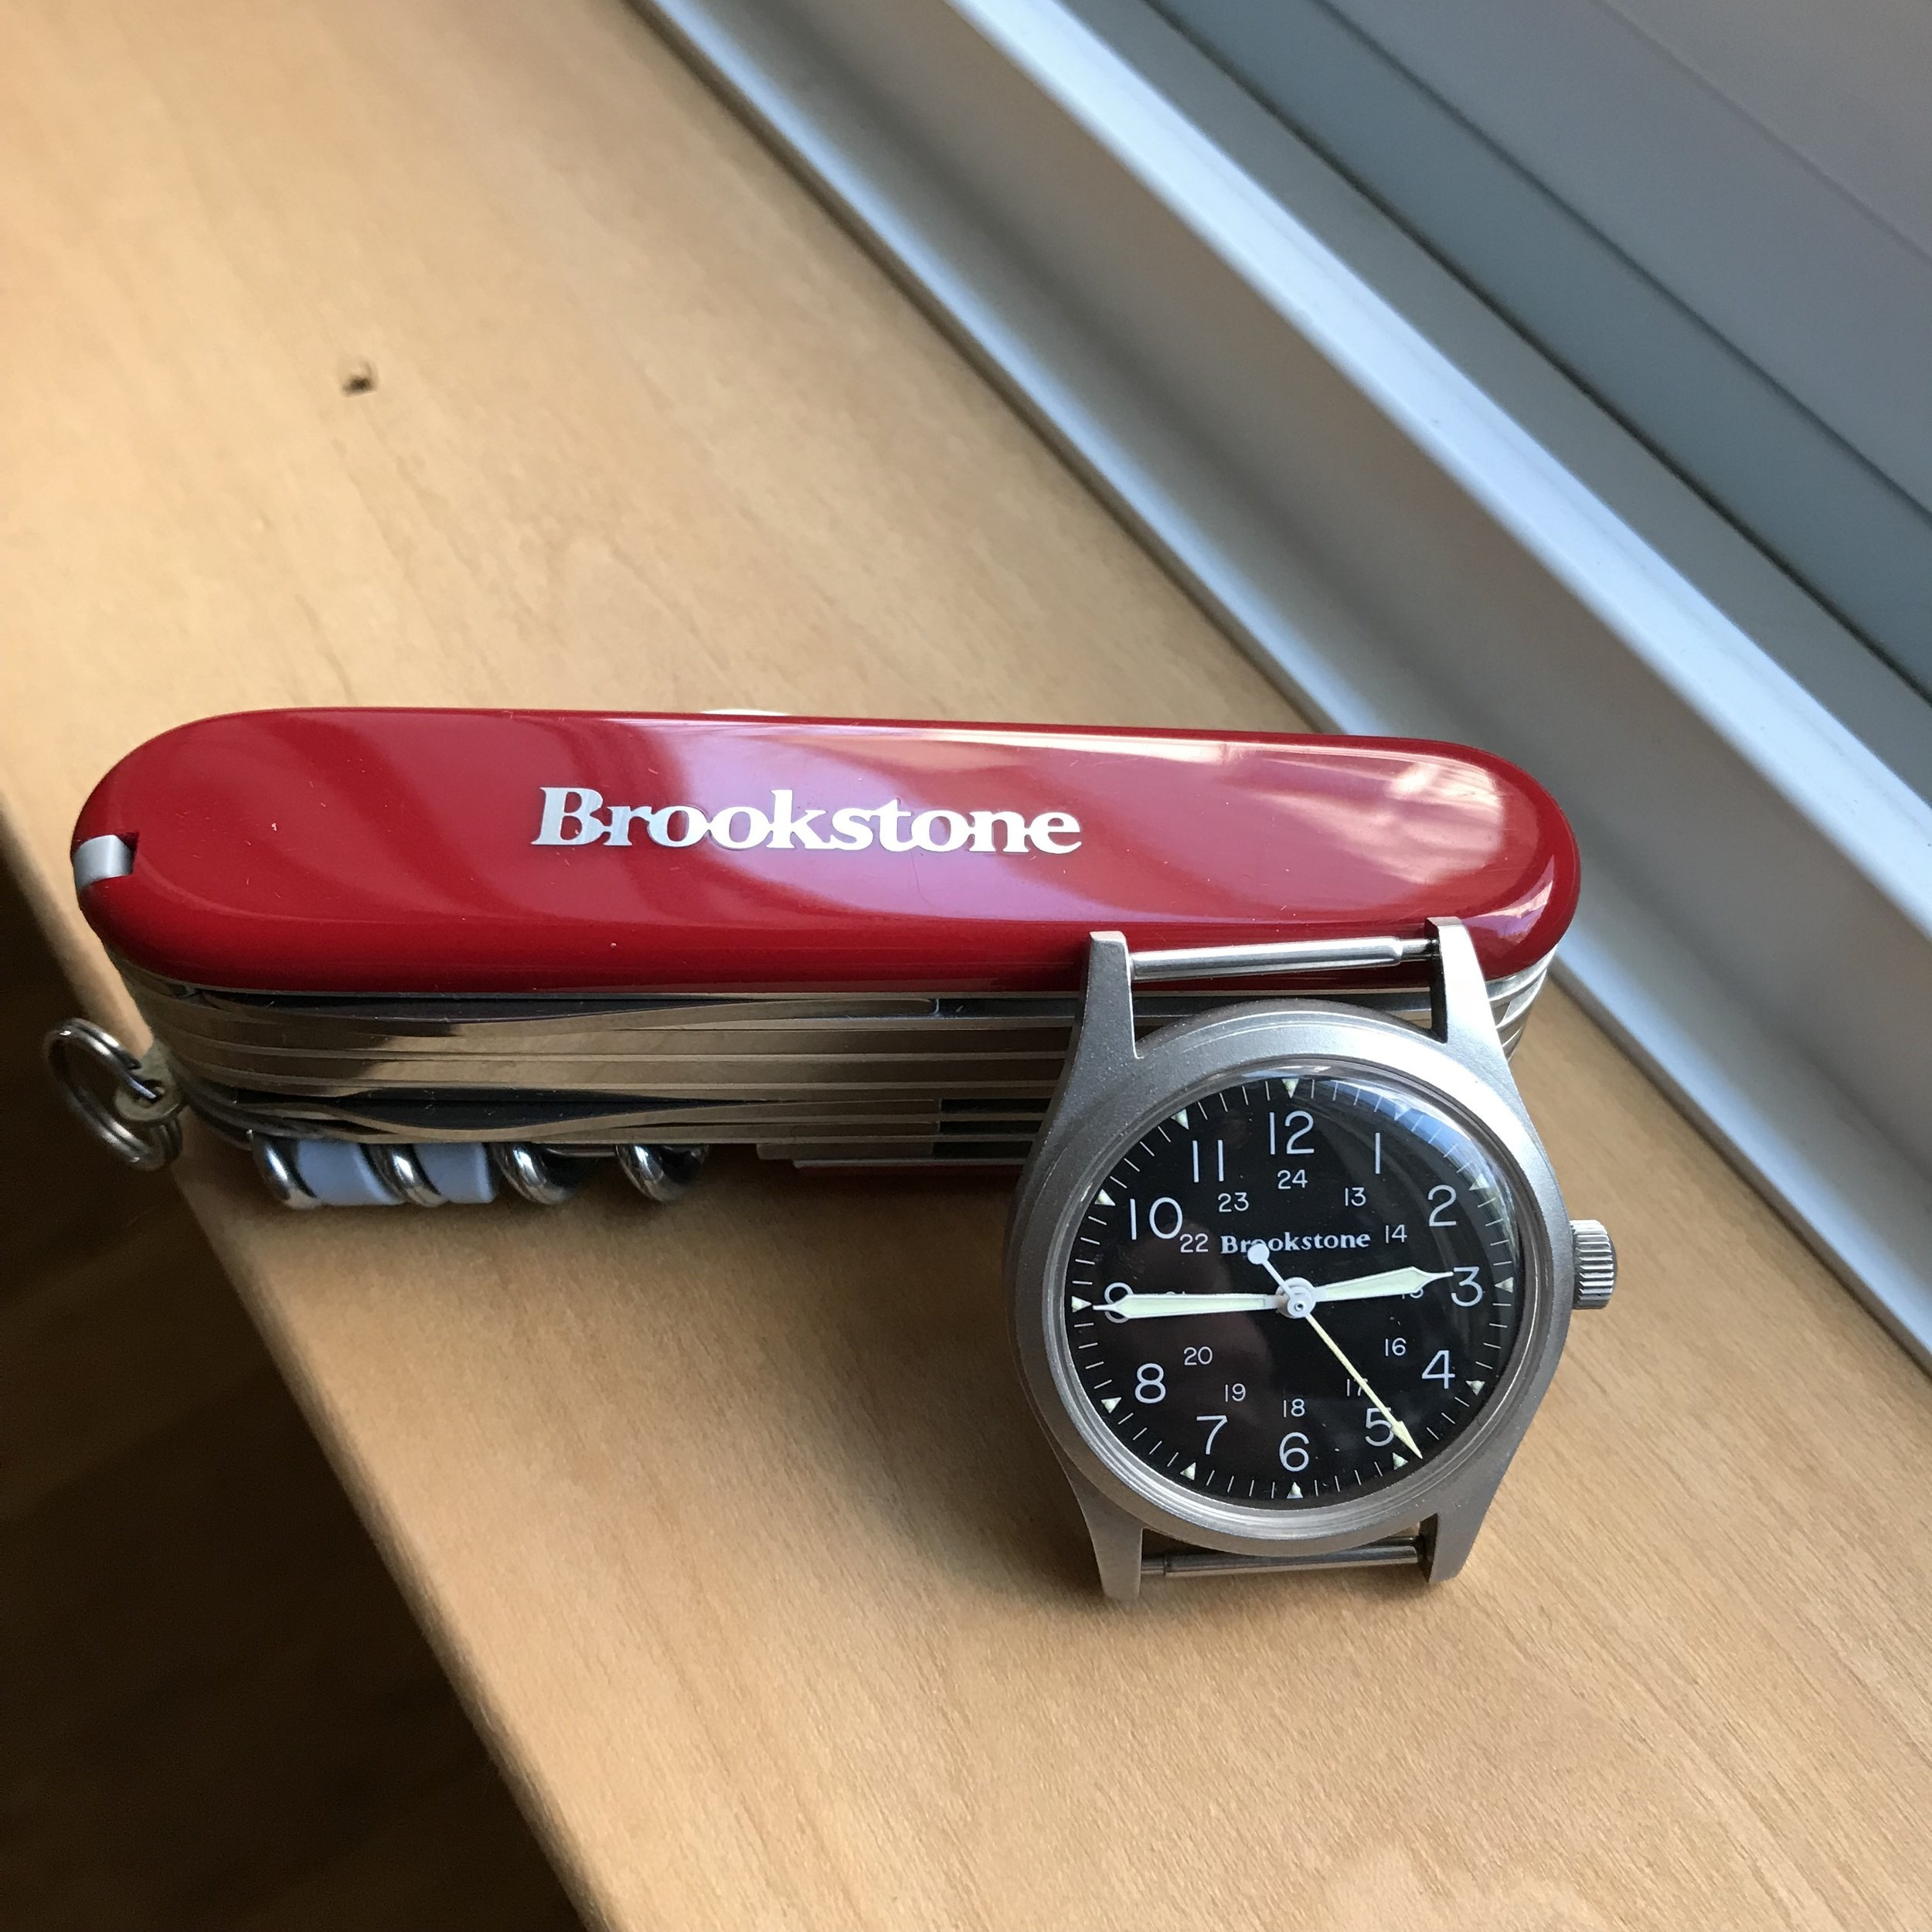 A Victorinox Champion with inlaid Brookstone logo.  I found this knife in NOS condition for shockingly little money, and it makes a great companion to the Brookstone Hamilton field watch.